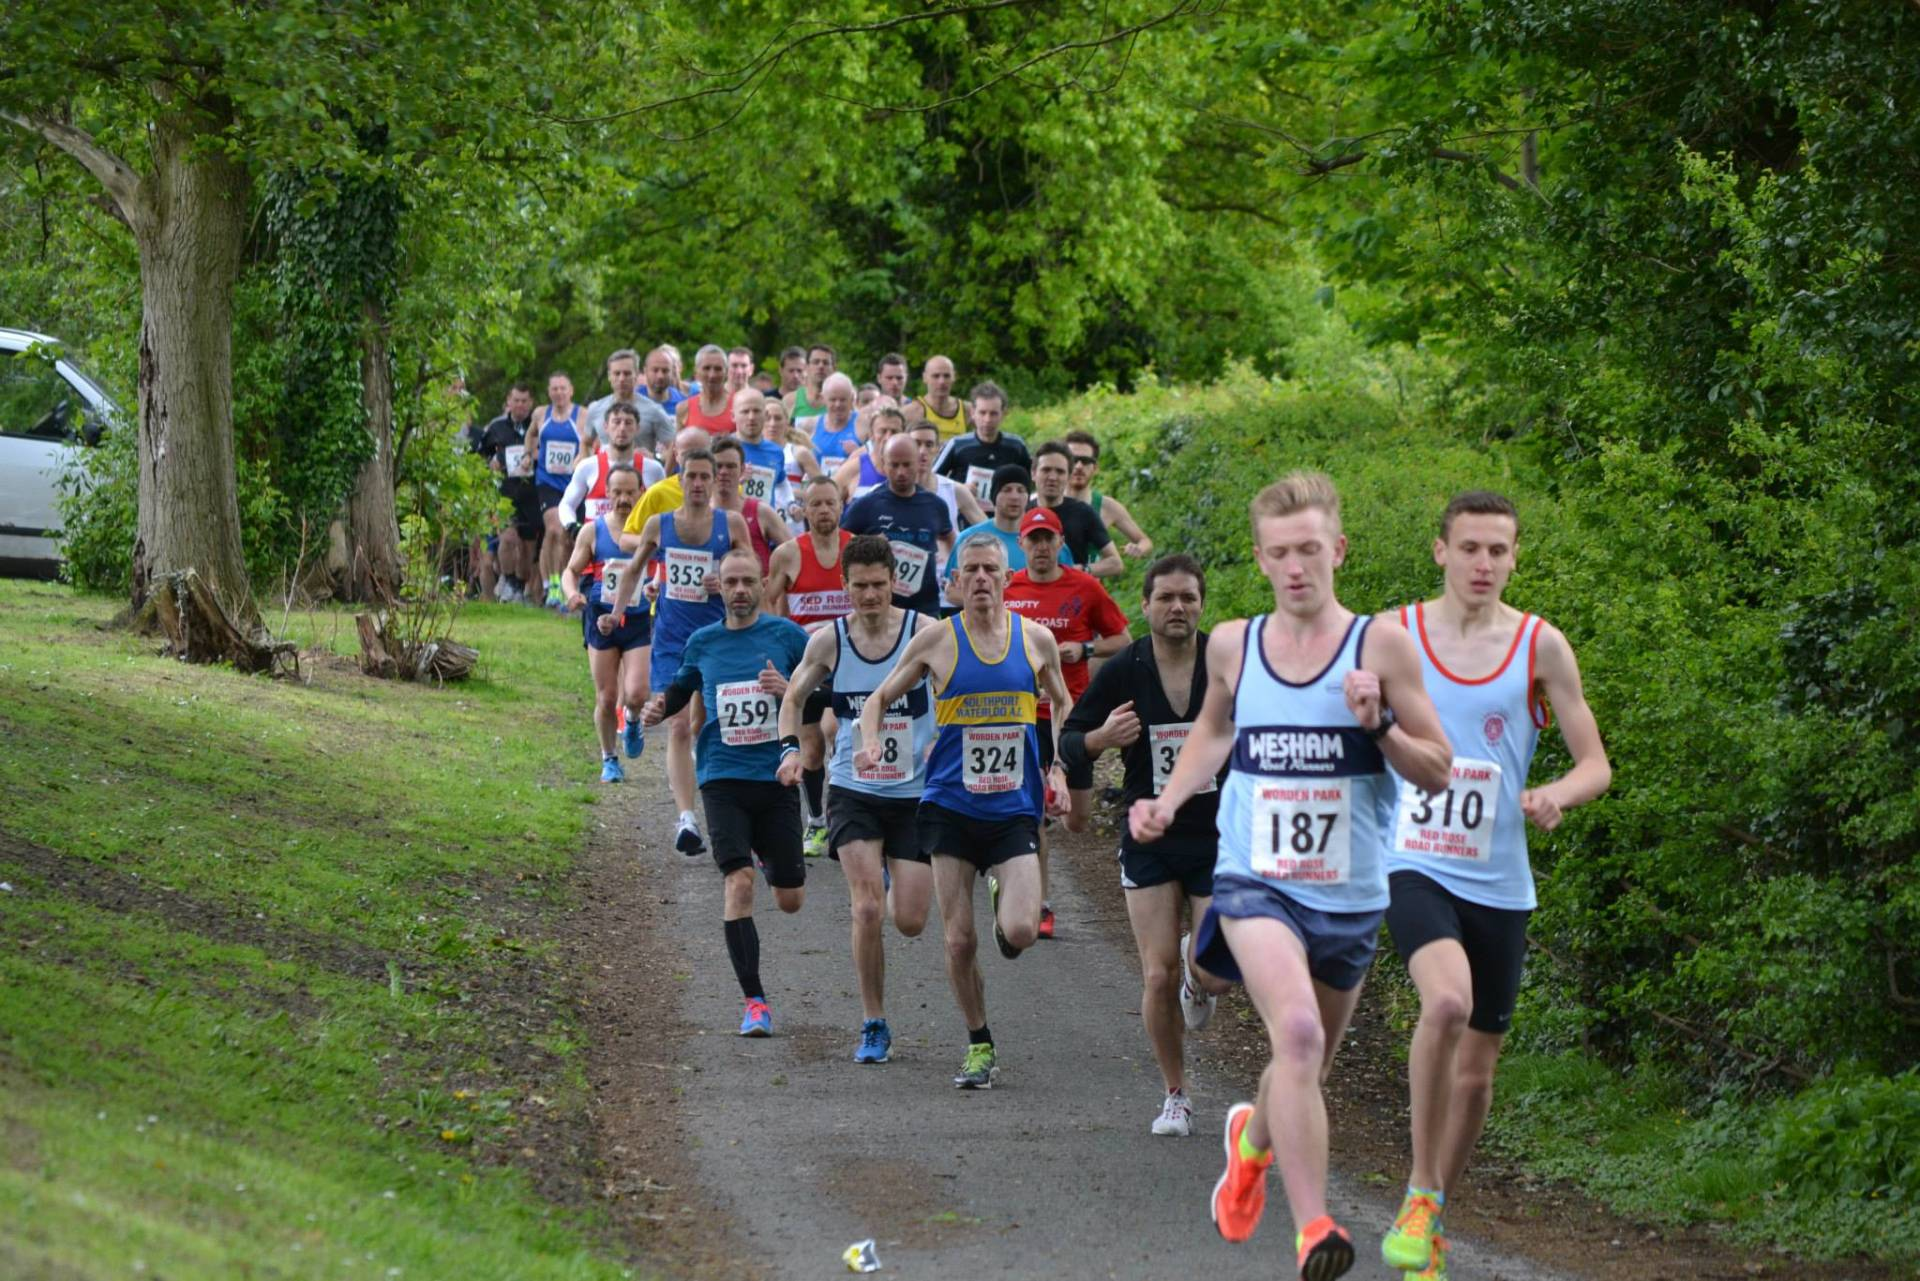 On the Roads with the Harriers – Top Three finish for Ben at Chester Half-Marathon